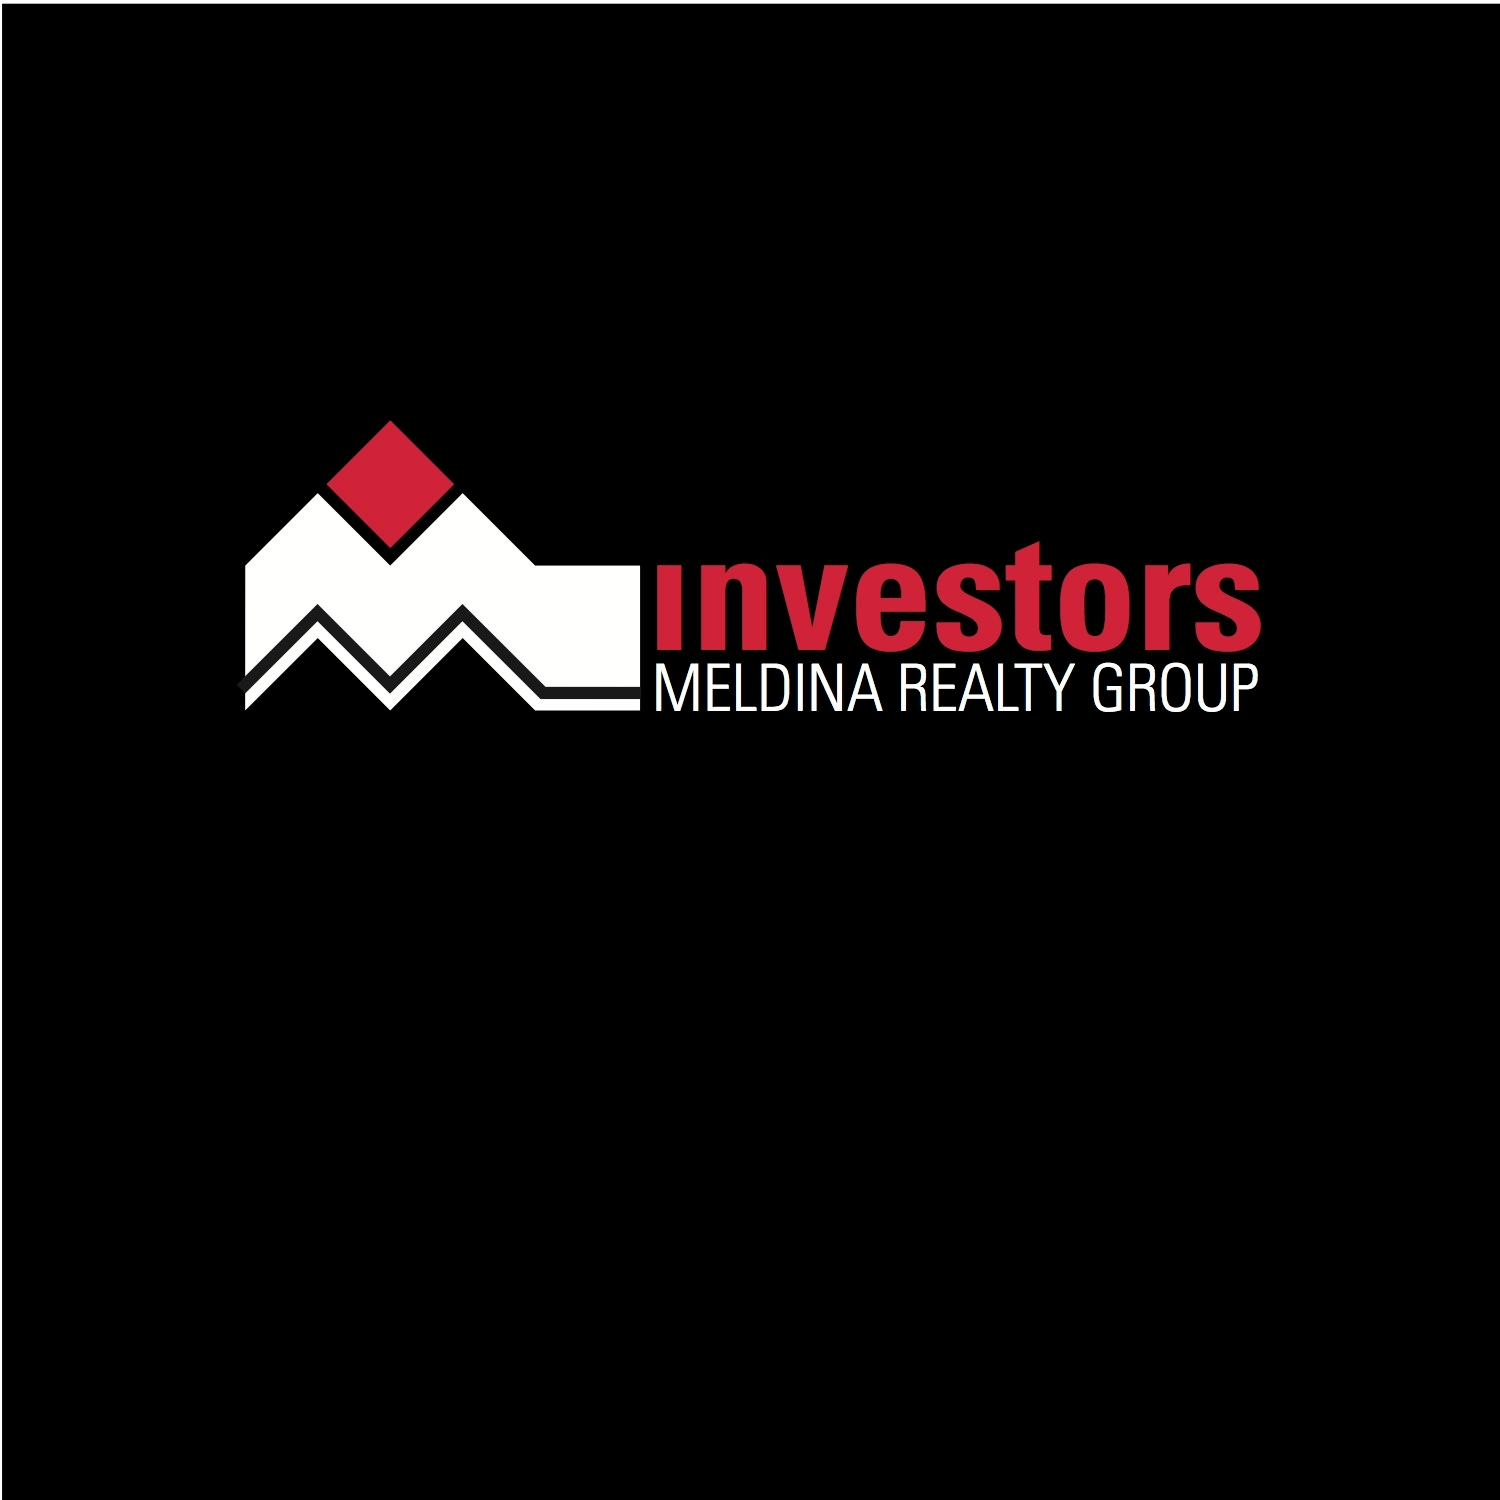 Investors Meldina Realty Group